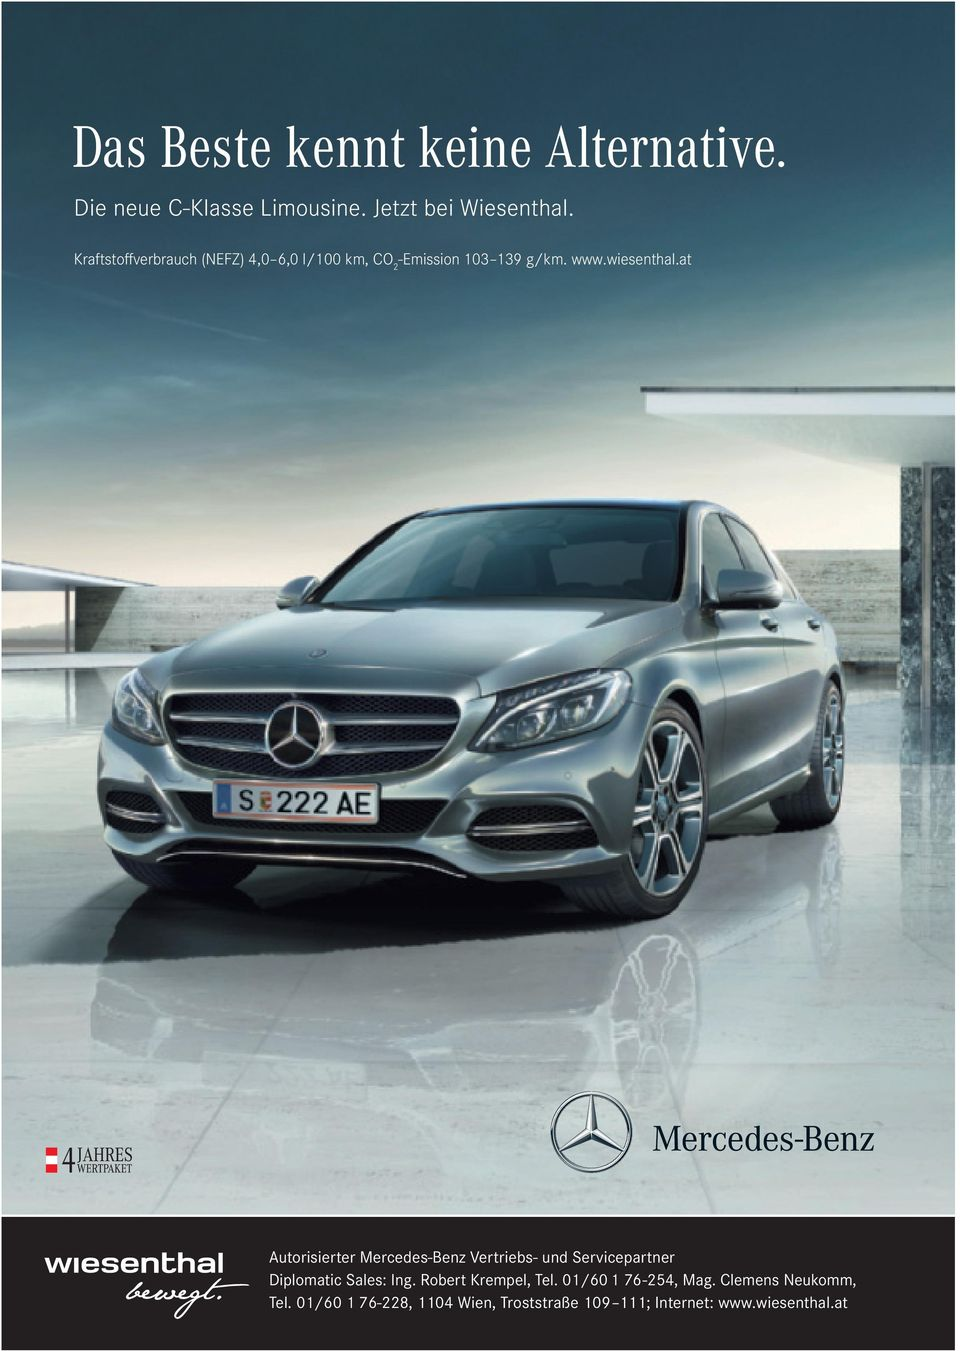 at Autorisierter Mercedes-Benz Vertriebs- und Servicepartner Diplomatic Sales: Ing.